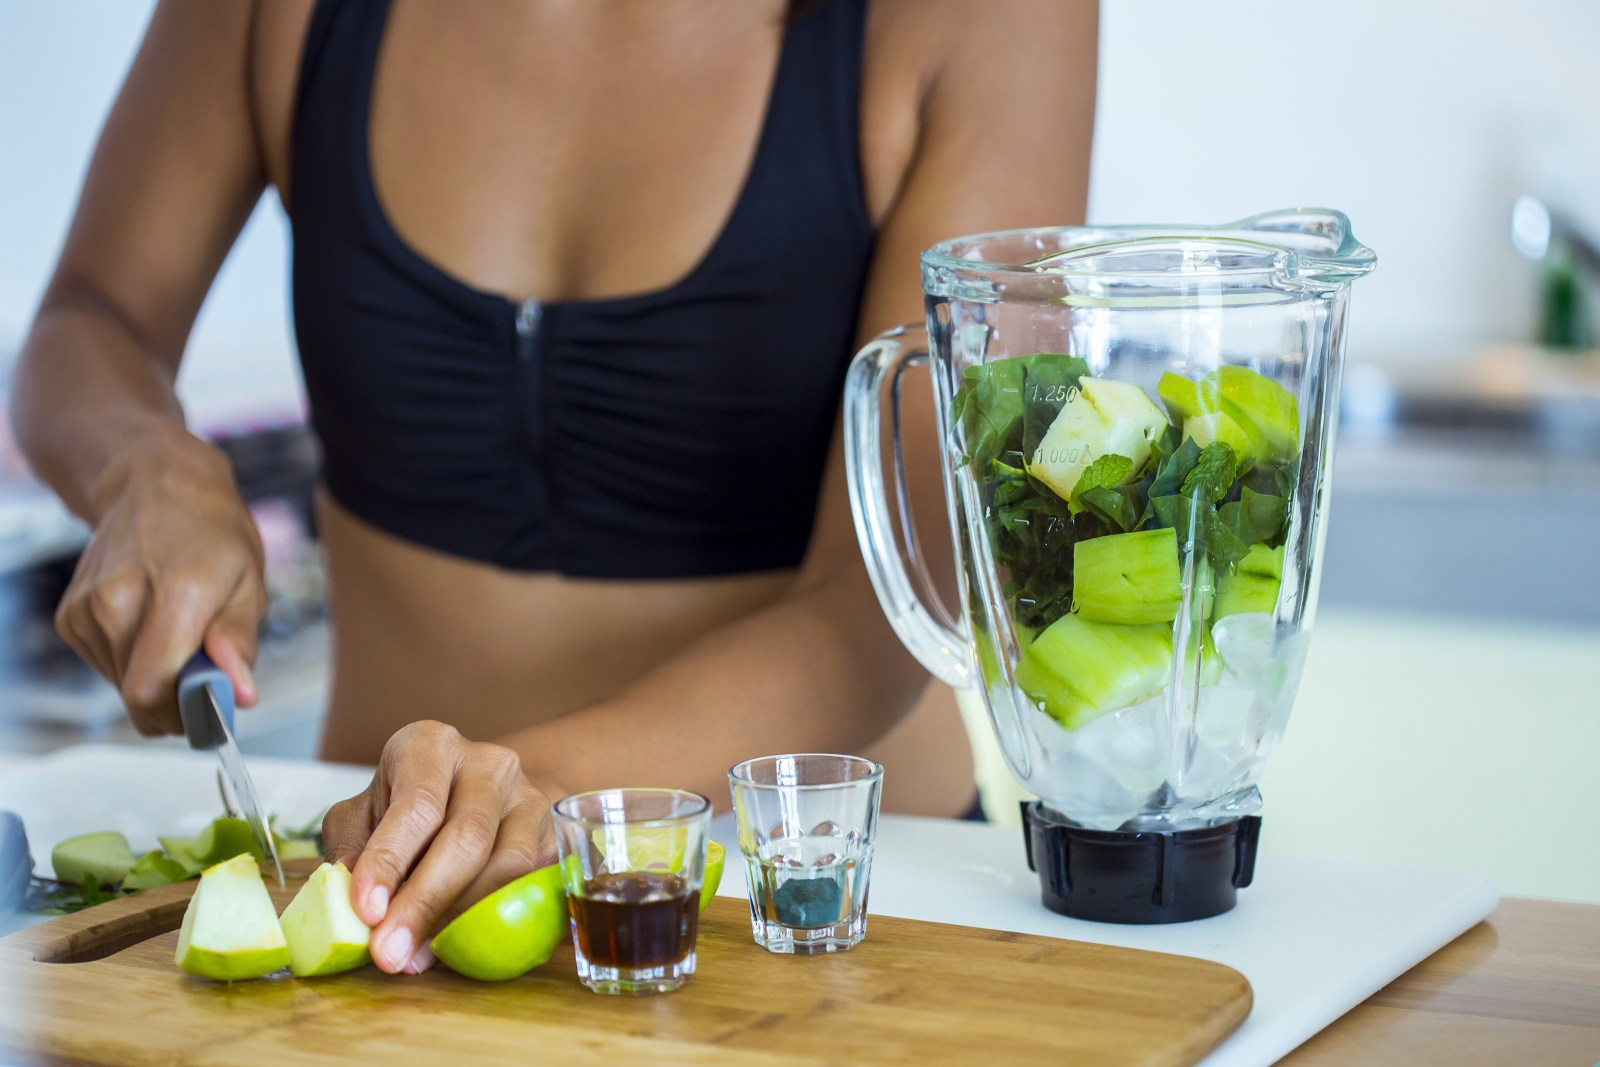 What the Deal with Detoxing?